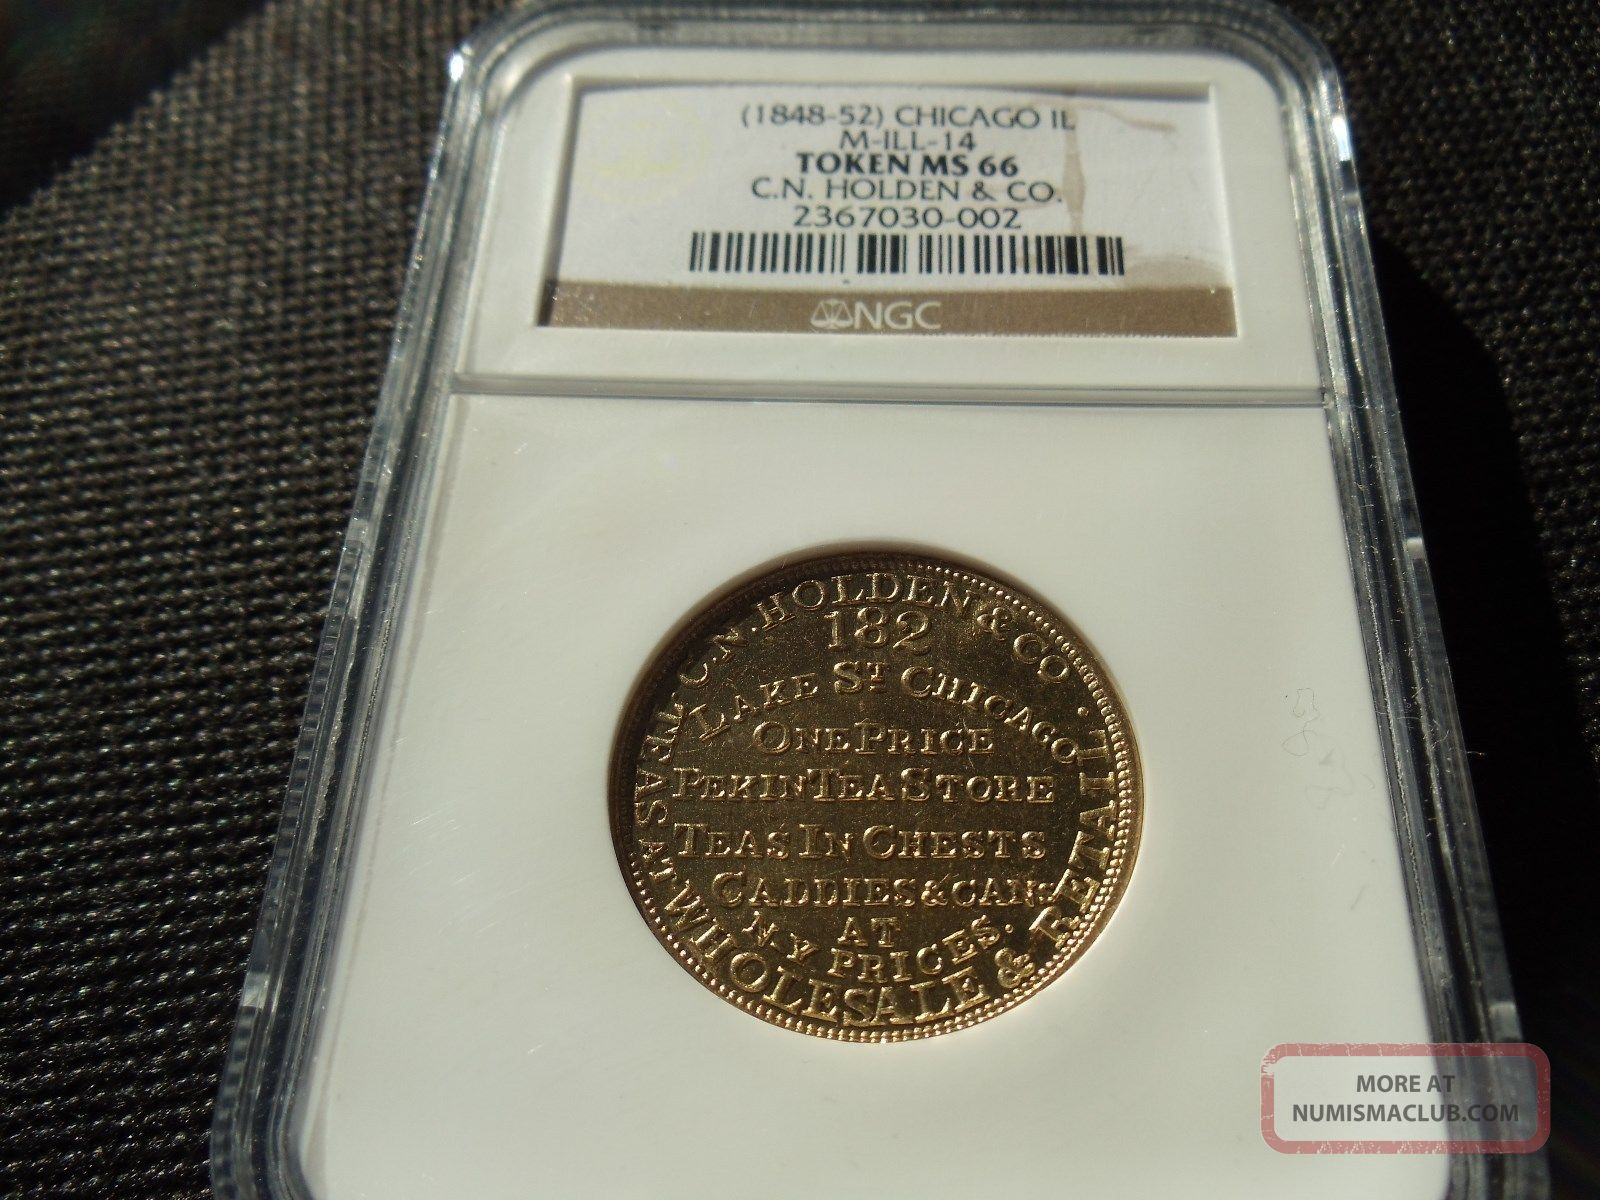 (1848 - 1852) Chicago,  Il M - Ill - 14 C.  N.  Holden & Co.  Token Ngc Ms - 66 Near Pl Gem Exonumia photo